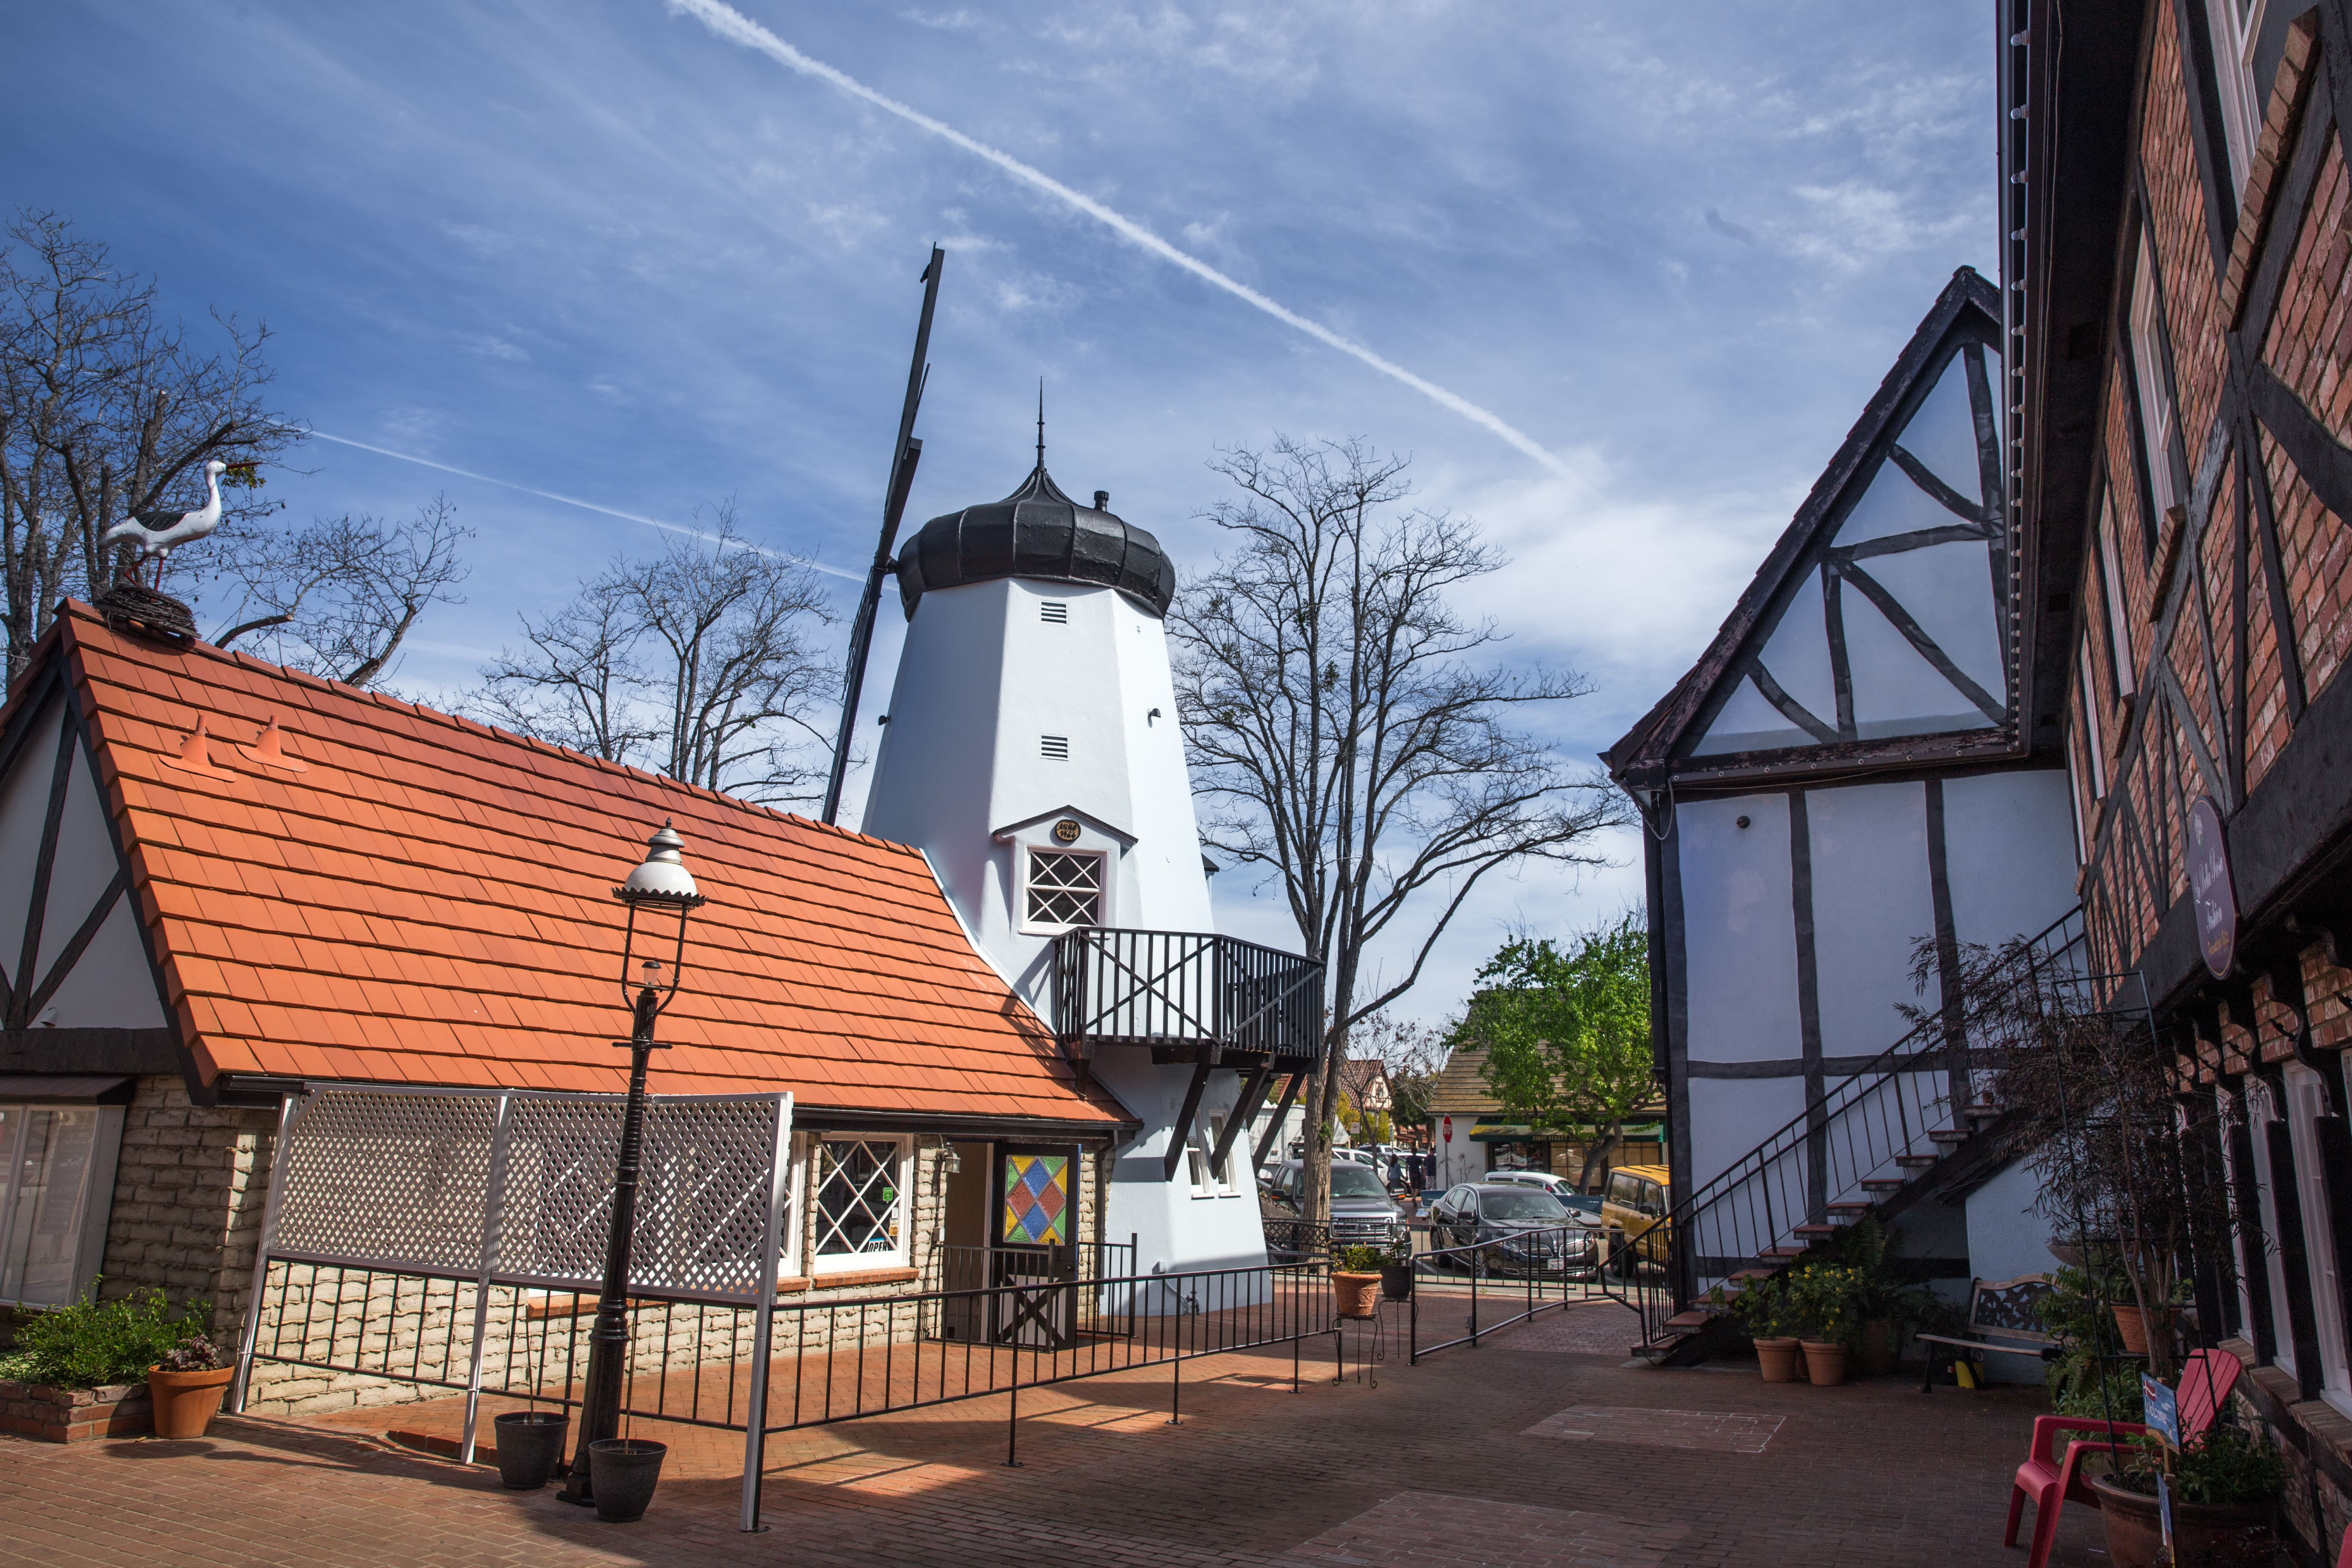 things to do in solvang, solvang, california, best places in solvang, traveller, travelblog, solvang travel blog, The Solvang Restaurant Aebleskivers, paulas pancakes solvang, olsen bakery, Solvang Copenhagen drive, Ostrichland Solvang, Must see places in Solvang, Solvang The Denmark of California, solvang ca, solvang gift shops, best restaurants in solvang, danish pasteries, Danish Architecture